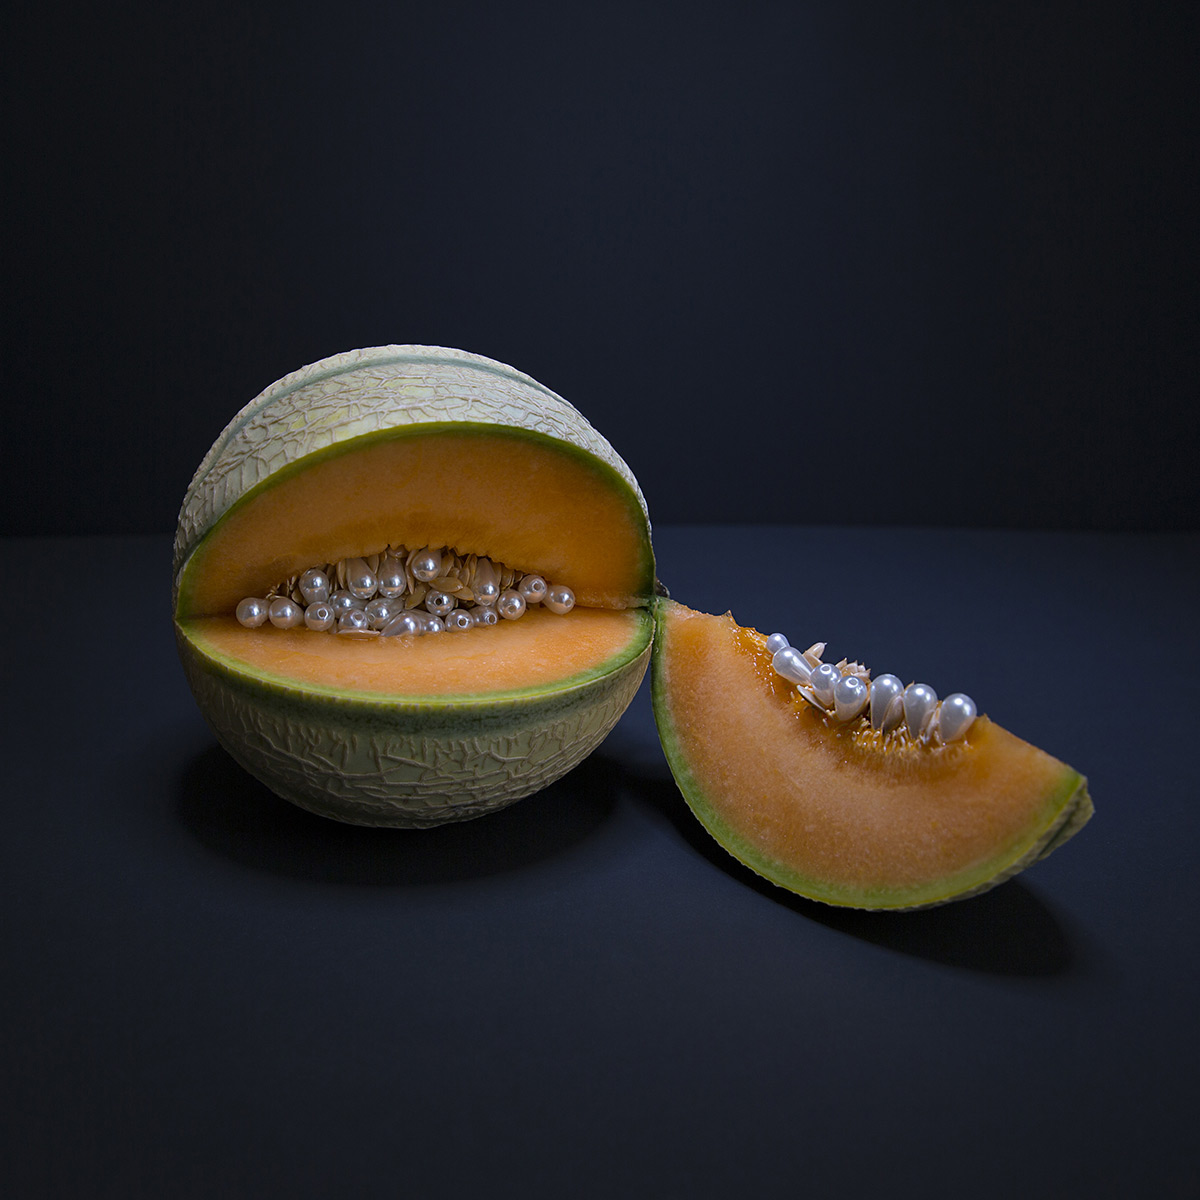 Pearls Puncture and Support Fruit and Vegetables in Photographs by Ana Straže